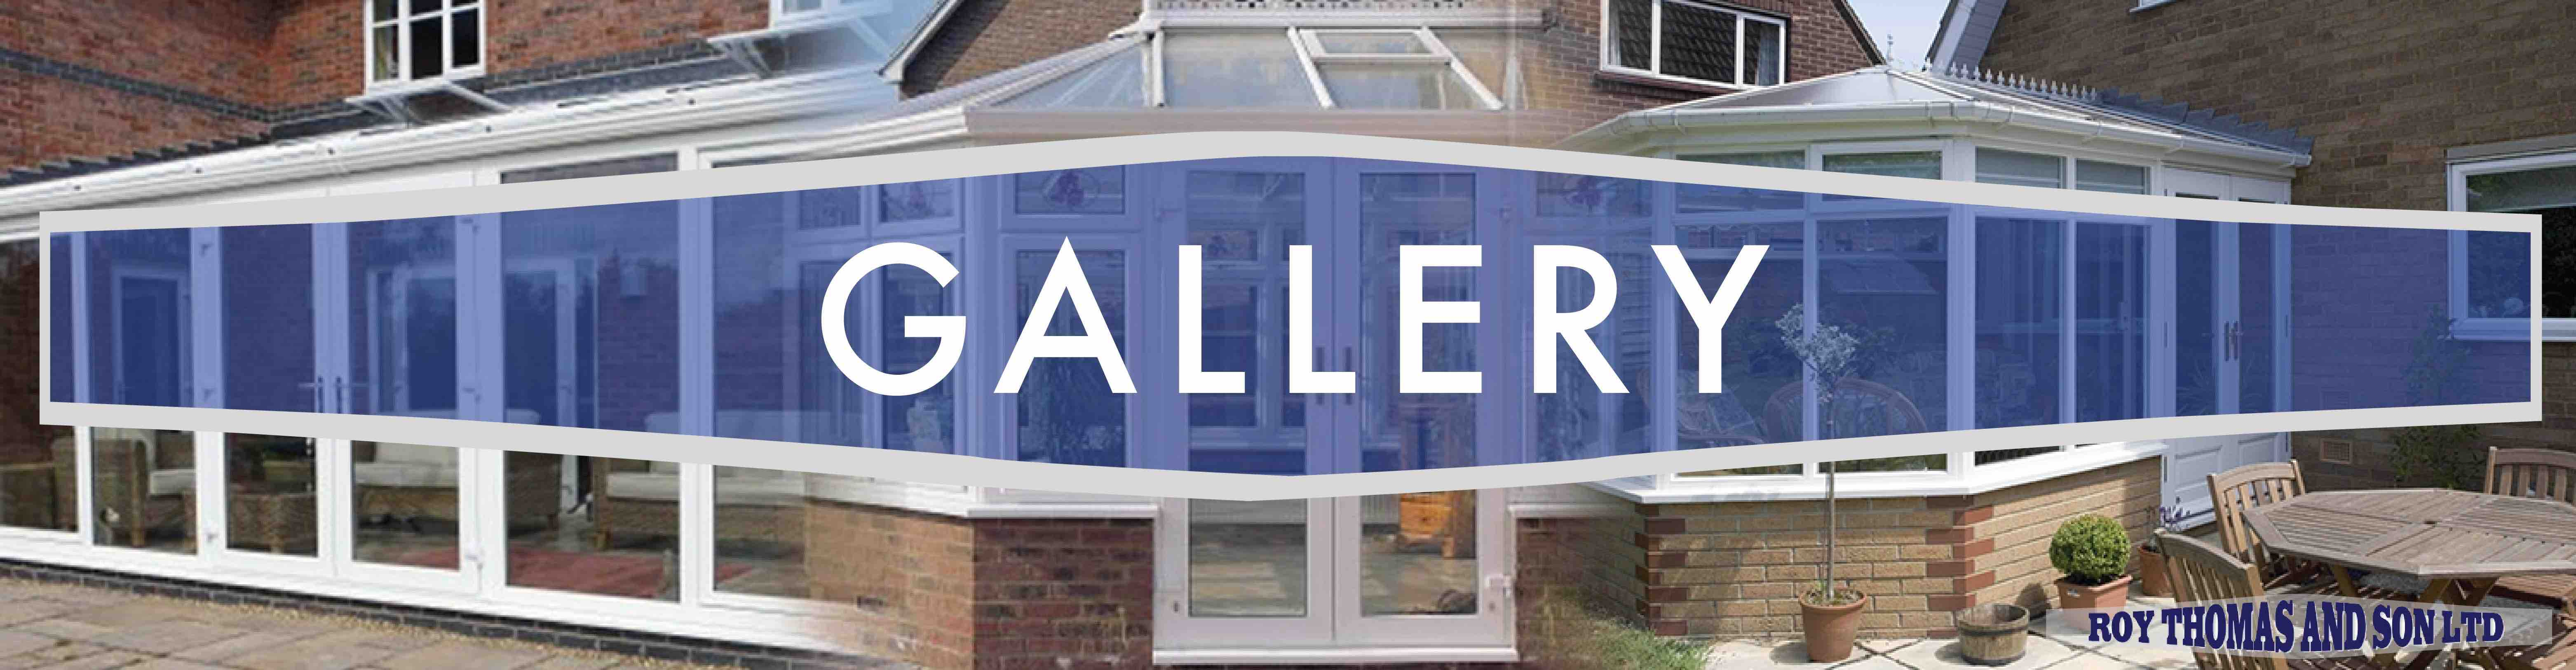 Roy-Thomas-and-Sons-Gallery-Banner-Window-Door-Conservatory-Services-copy